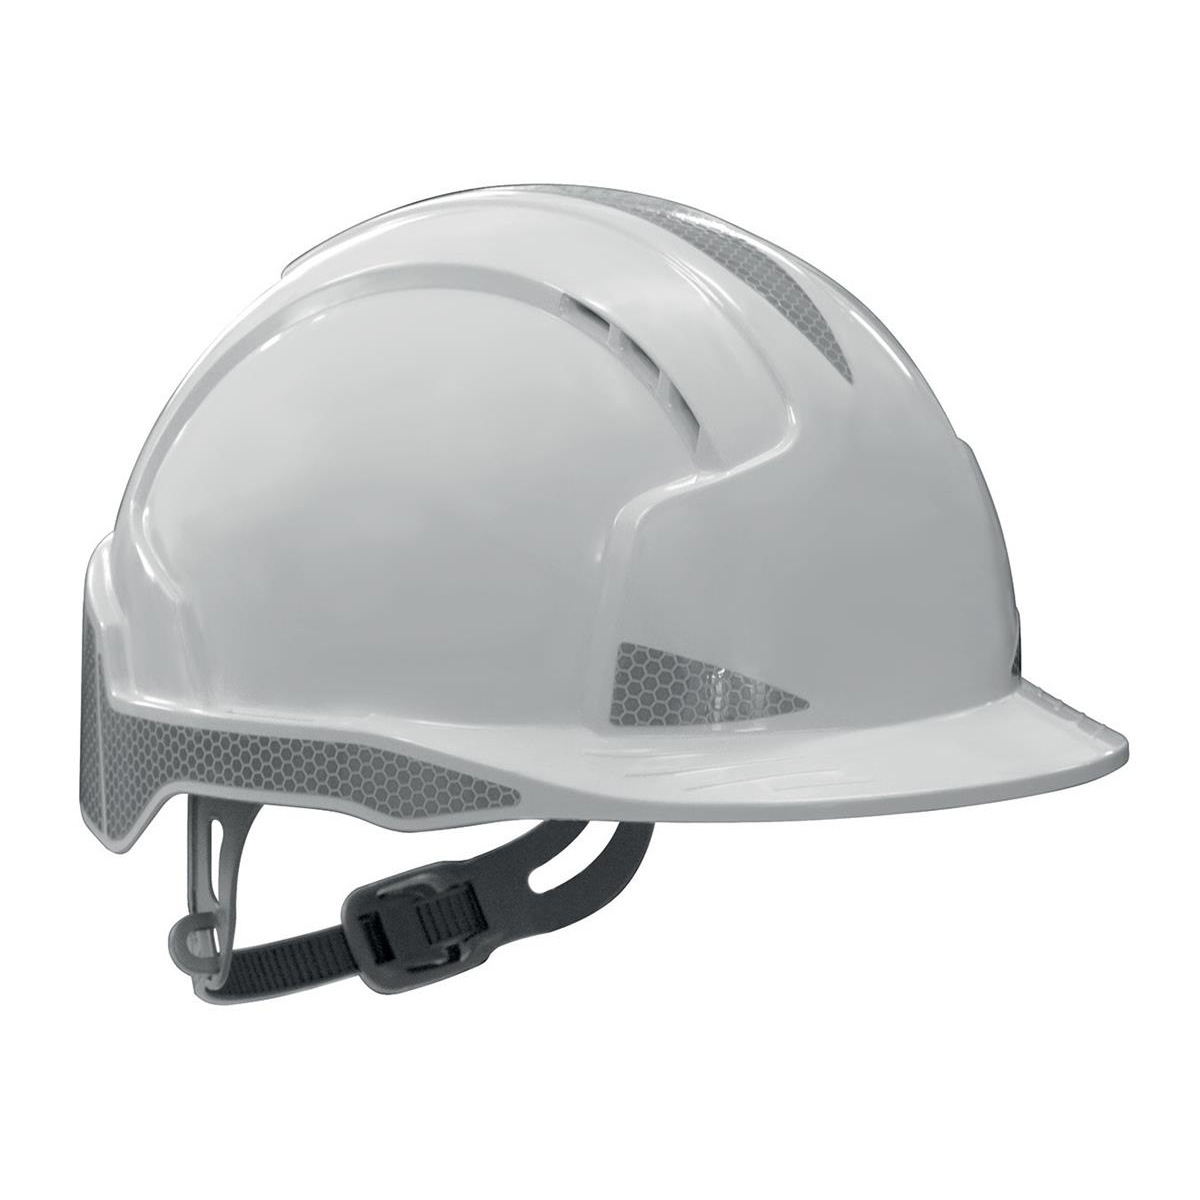 JSP EVOLite Safety Helmet ABS 6-point Harness Reflective Strips EN397 White Ref AJB160-400-100